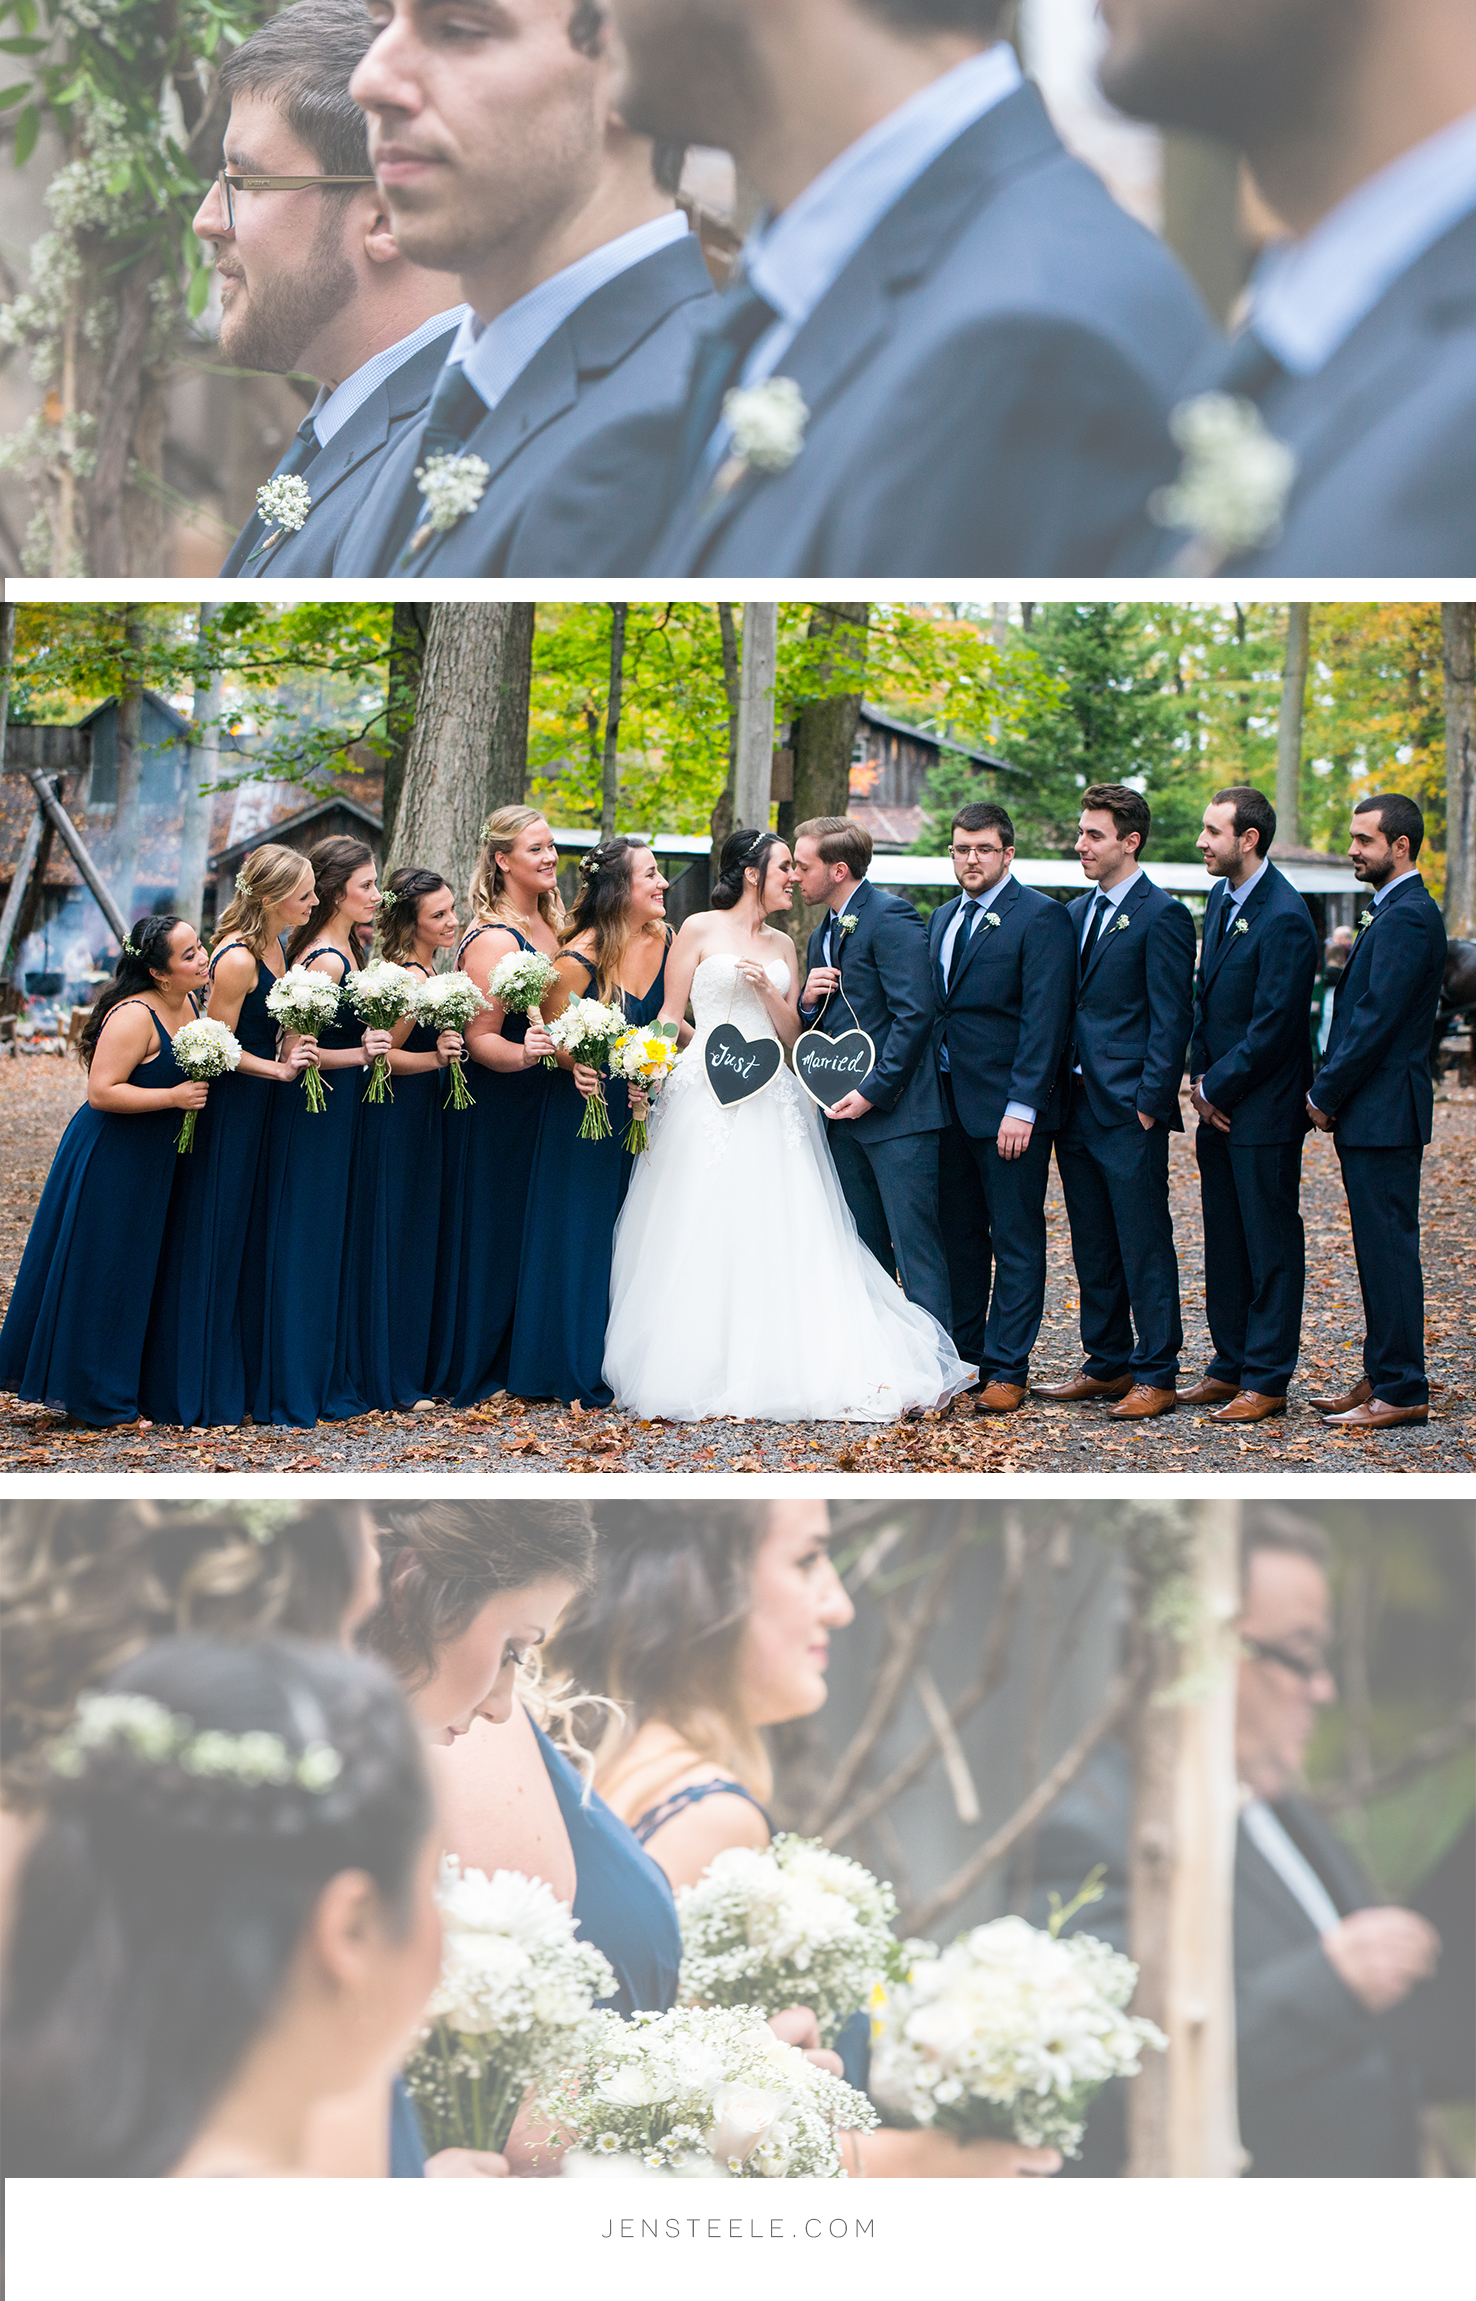 SUGAR-SHACK-RUSTIC-WEDDINGS-QUEBEC-_JenSteelePhotography01